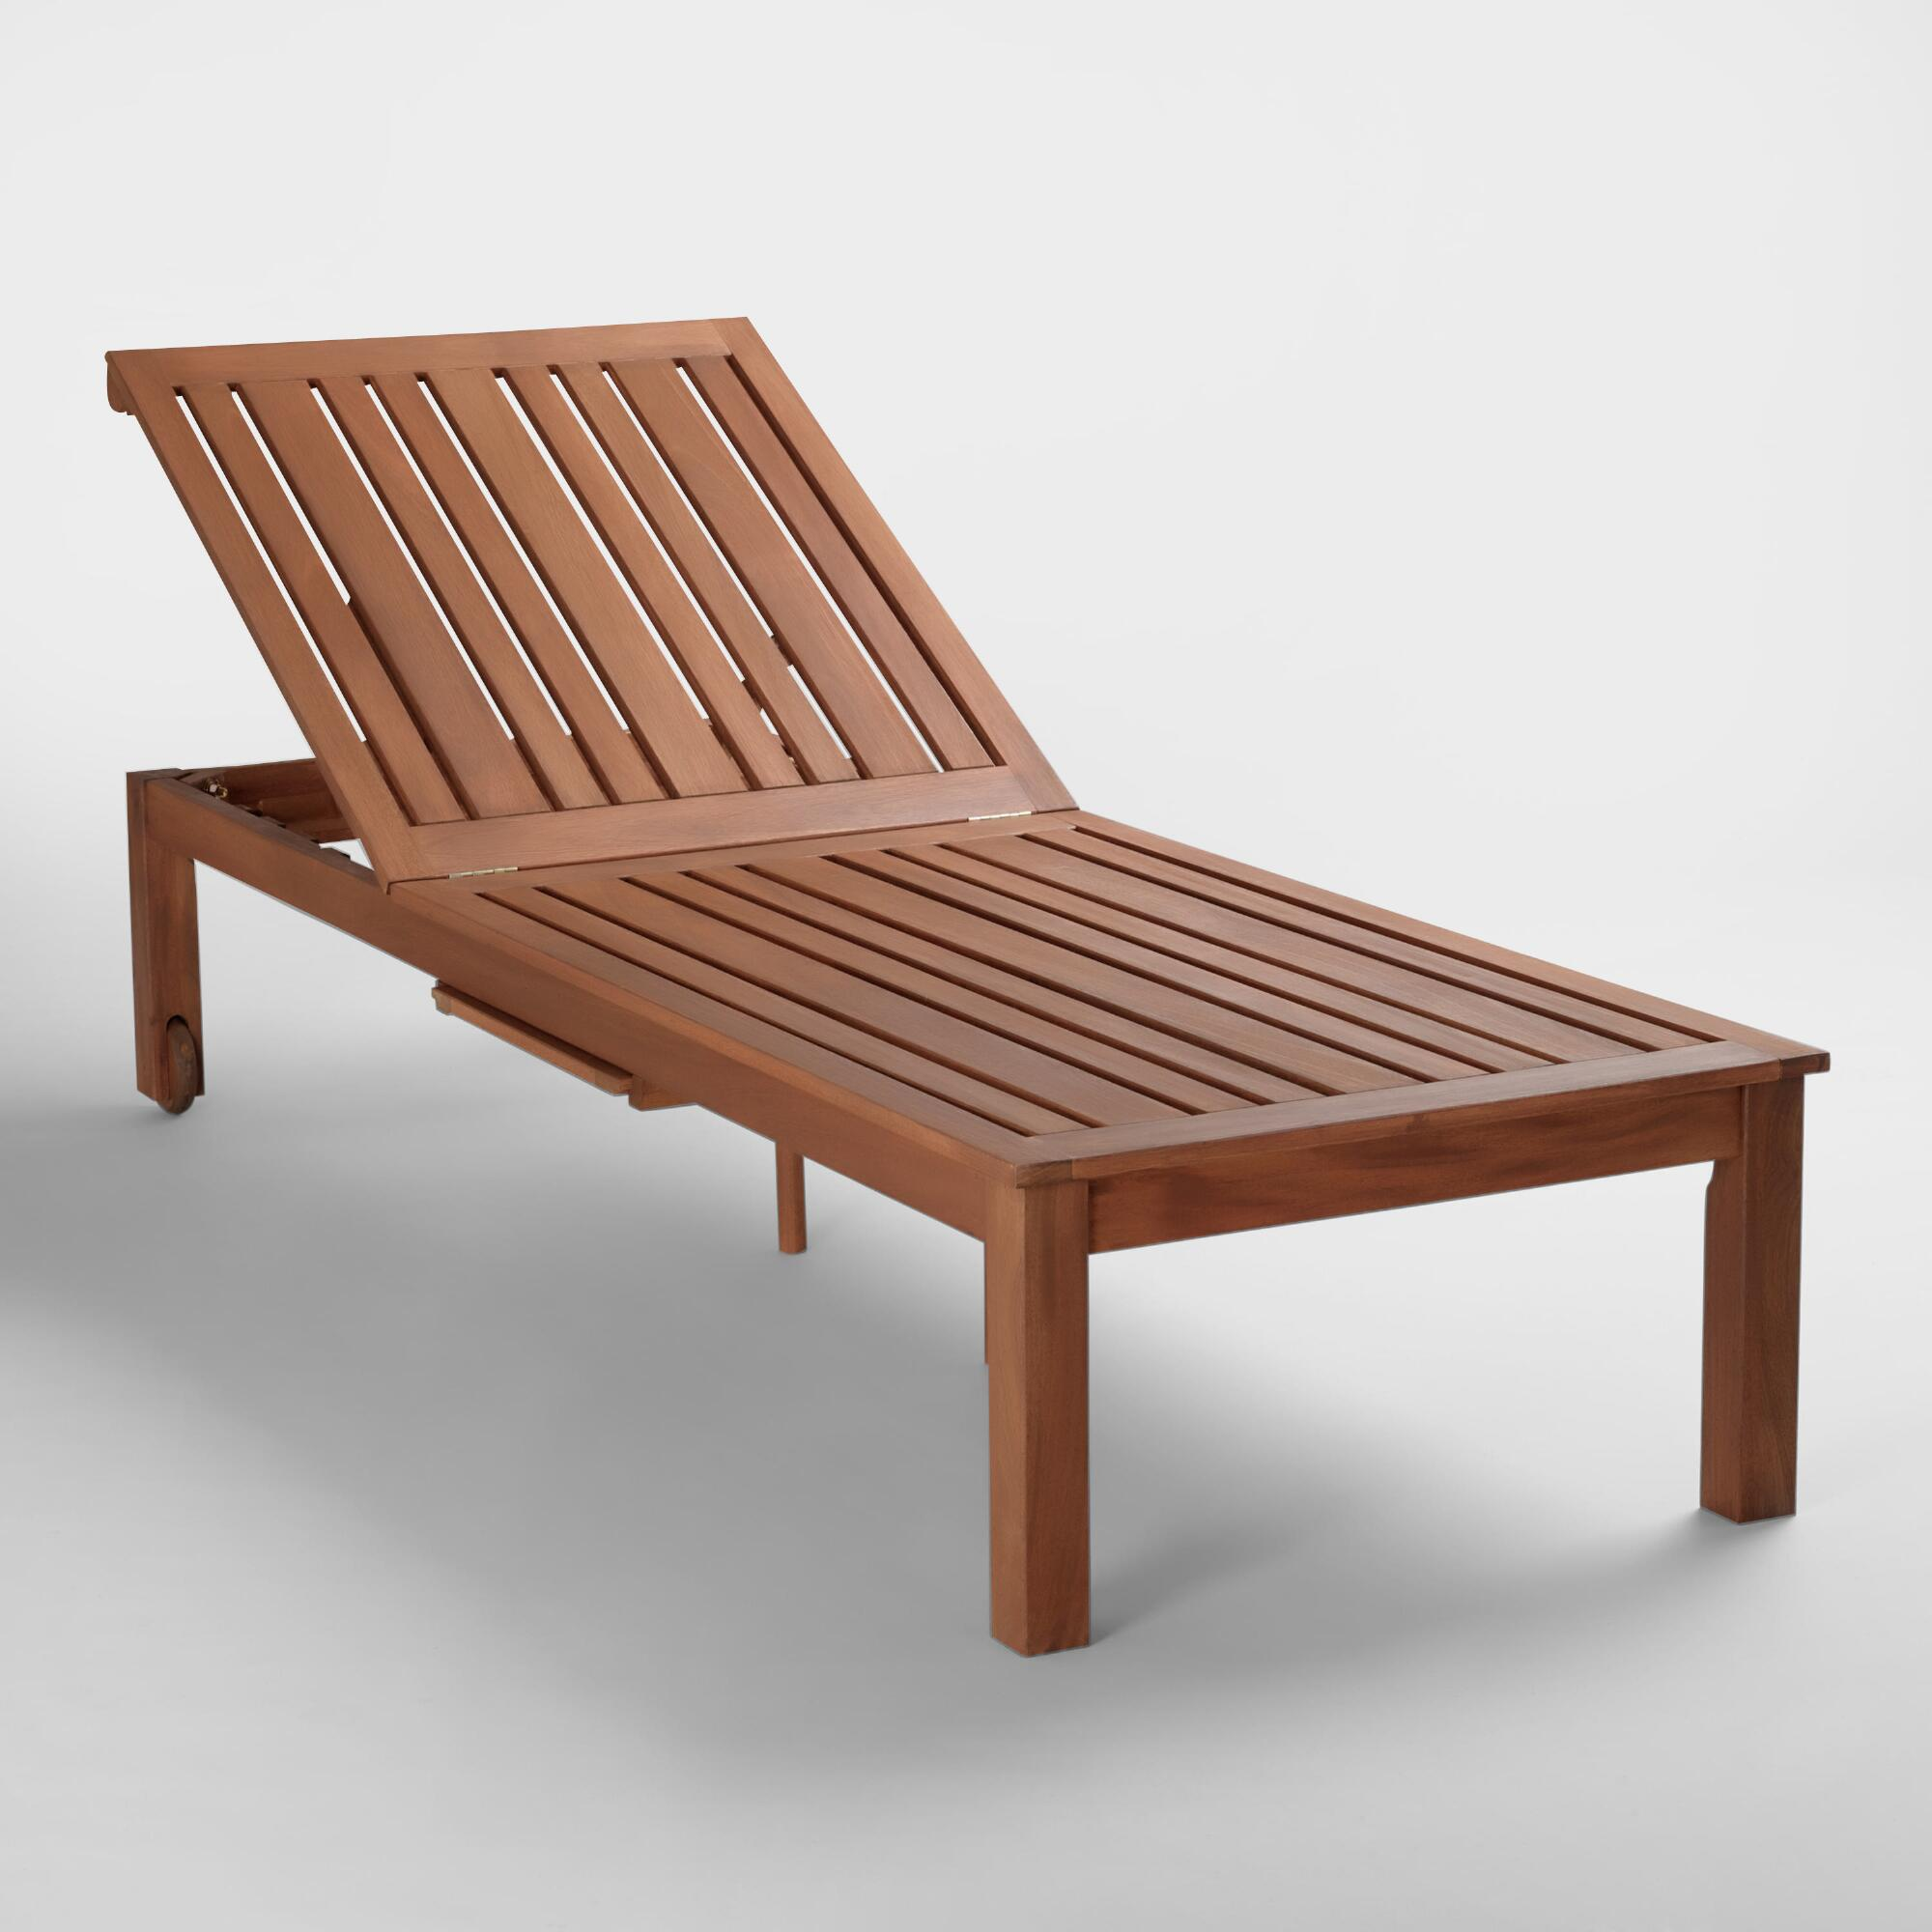 Outdoor wooden lounge chairs - Wood St Martin Chaise Lounger